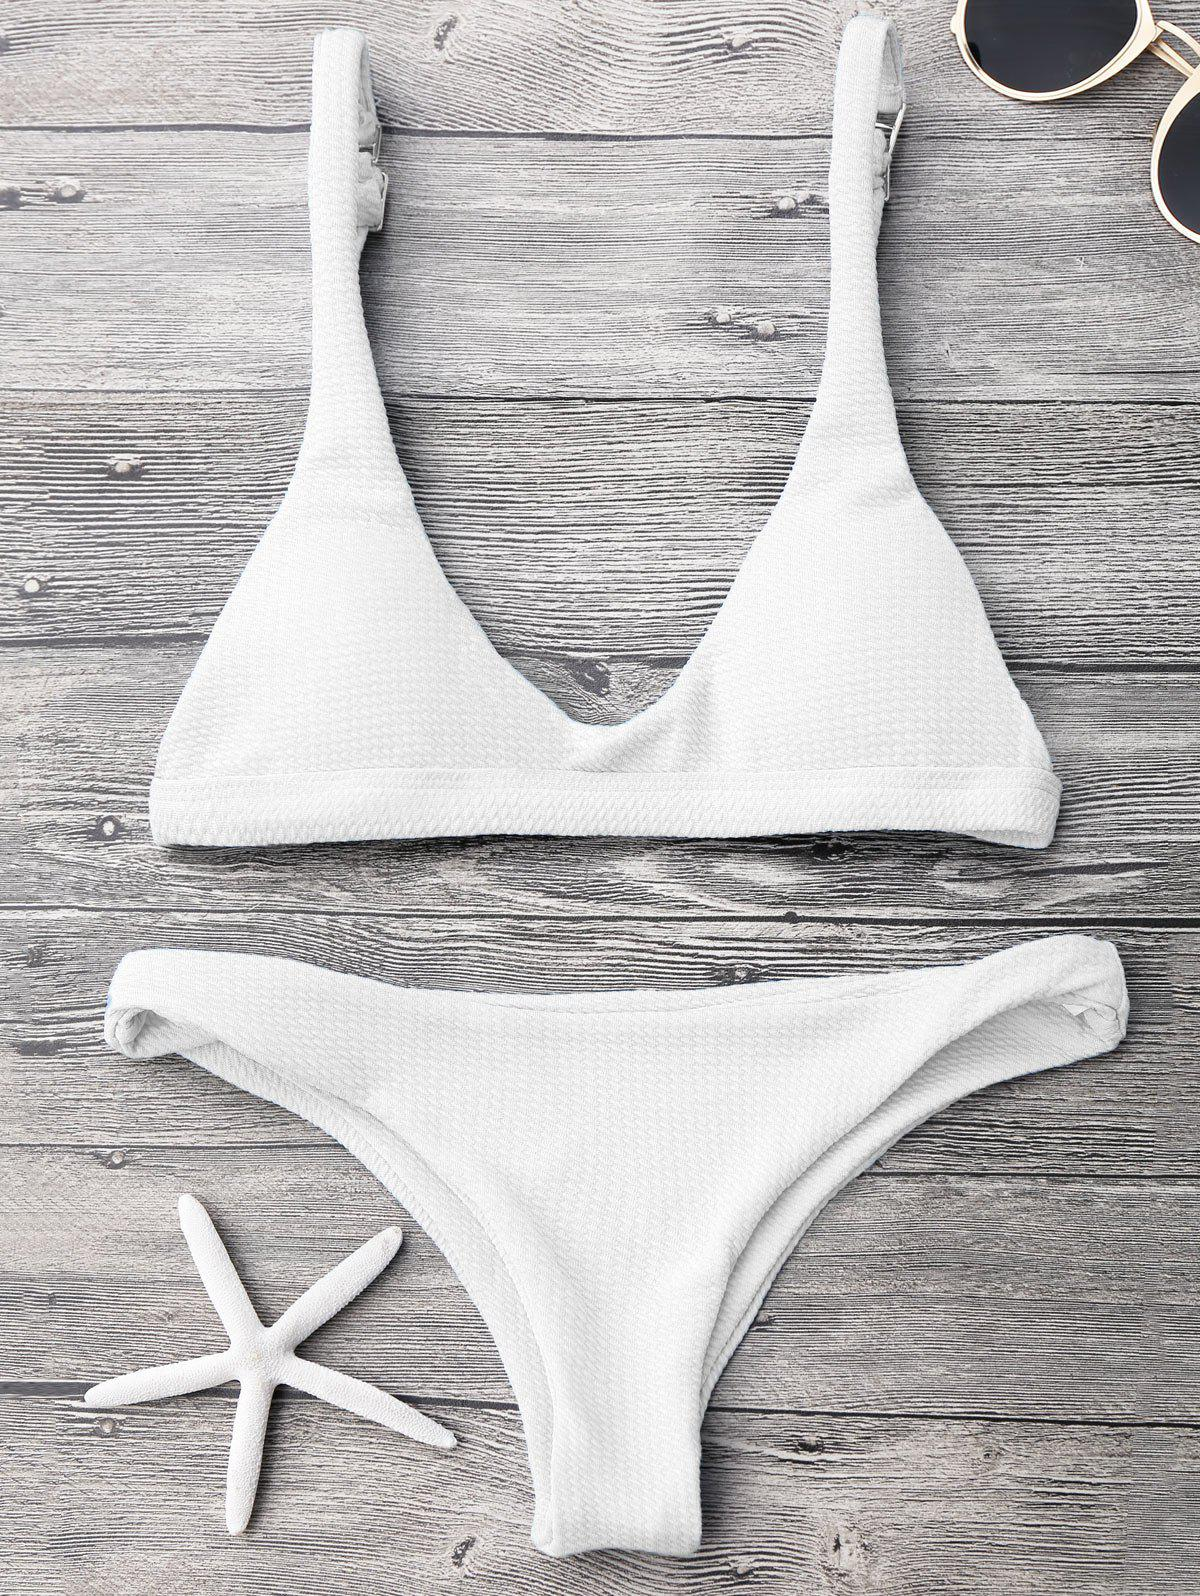 Padded Scoop Neck Bikini SetWOMEN<br><br>Size: M; Color: WHITE; Swimwear Type: Bikini; Gender: For Women; Material: Polyester,Spandex; Bra Style: Padded; Support Type: Wire Free; Neckline: Scoop Neck; Pattern Type: Solid; Waist: Low Waisted; Elasticity: Elastic; Weight: 0.2000kg; Package Contents: 1 x Top  1 x Bottoms;